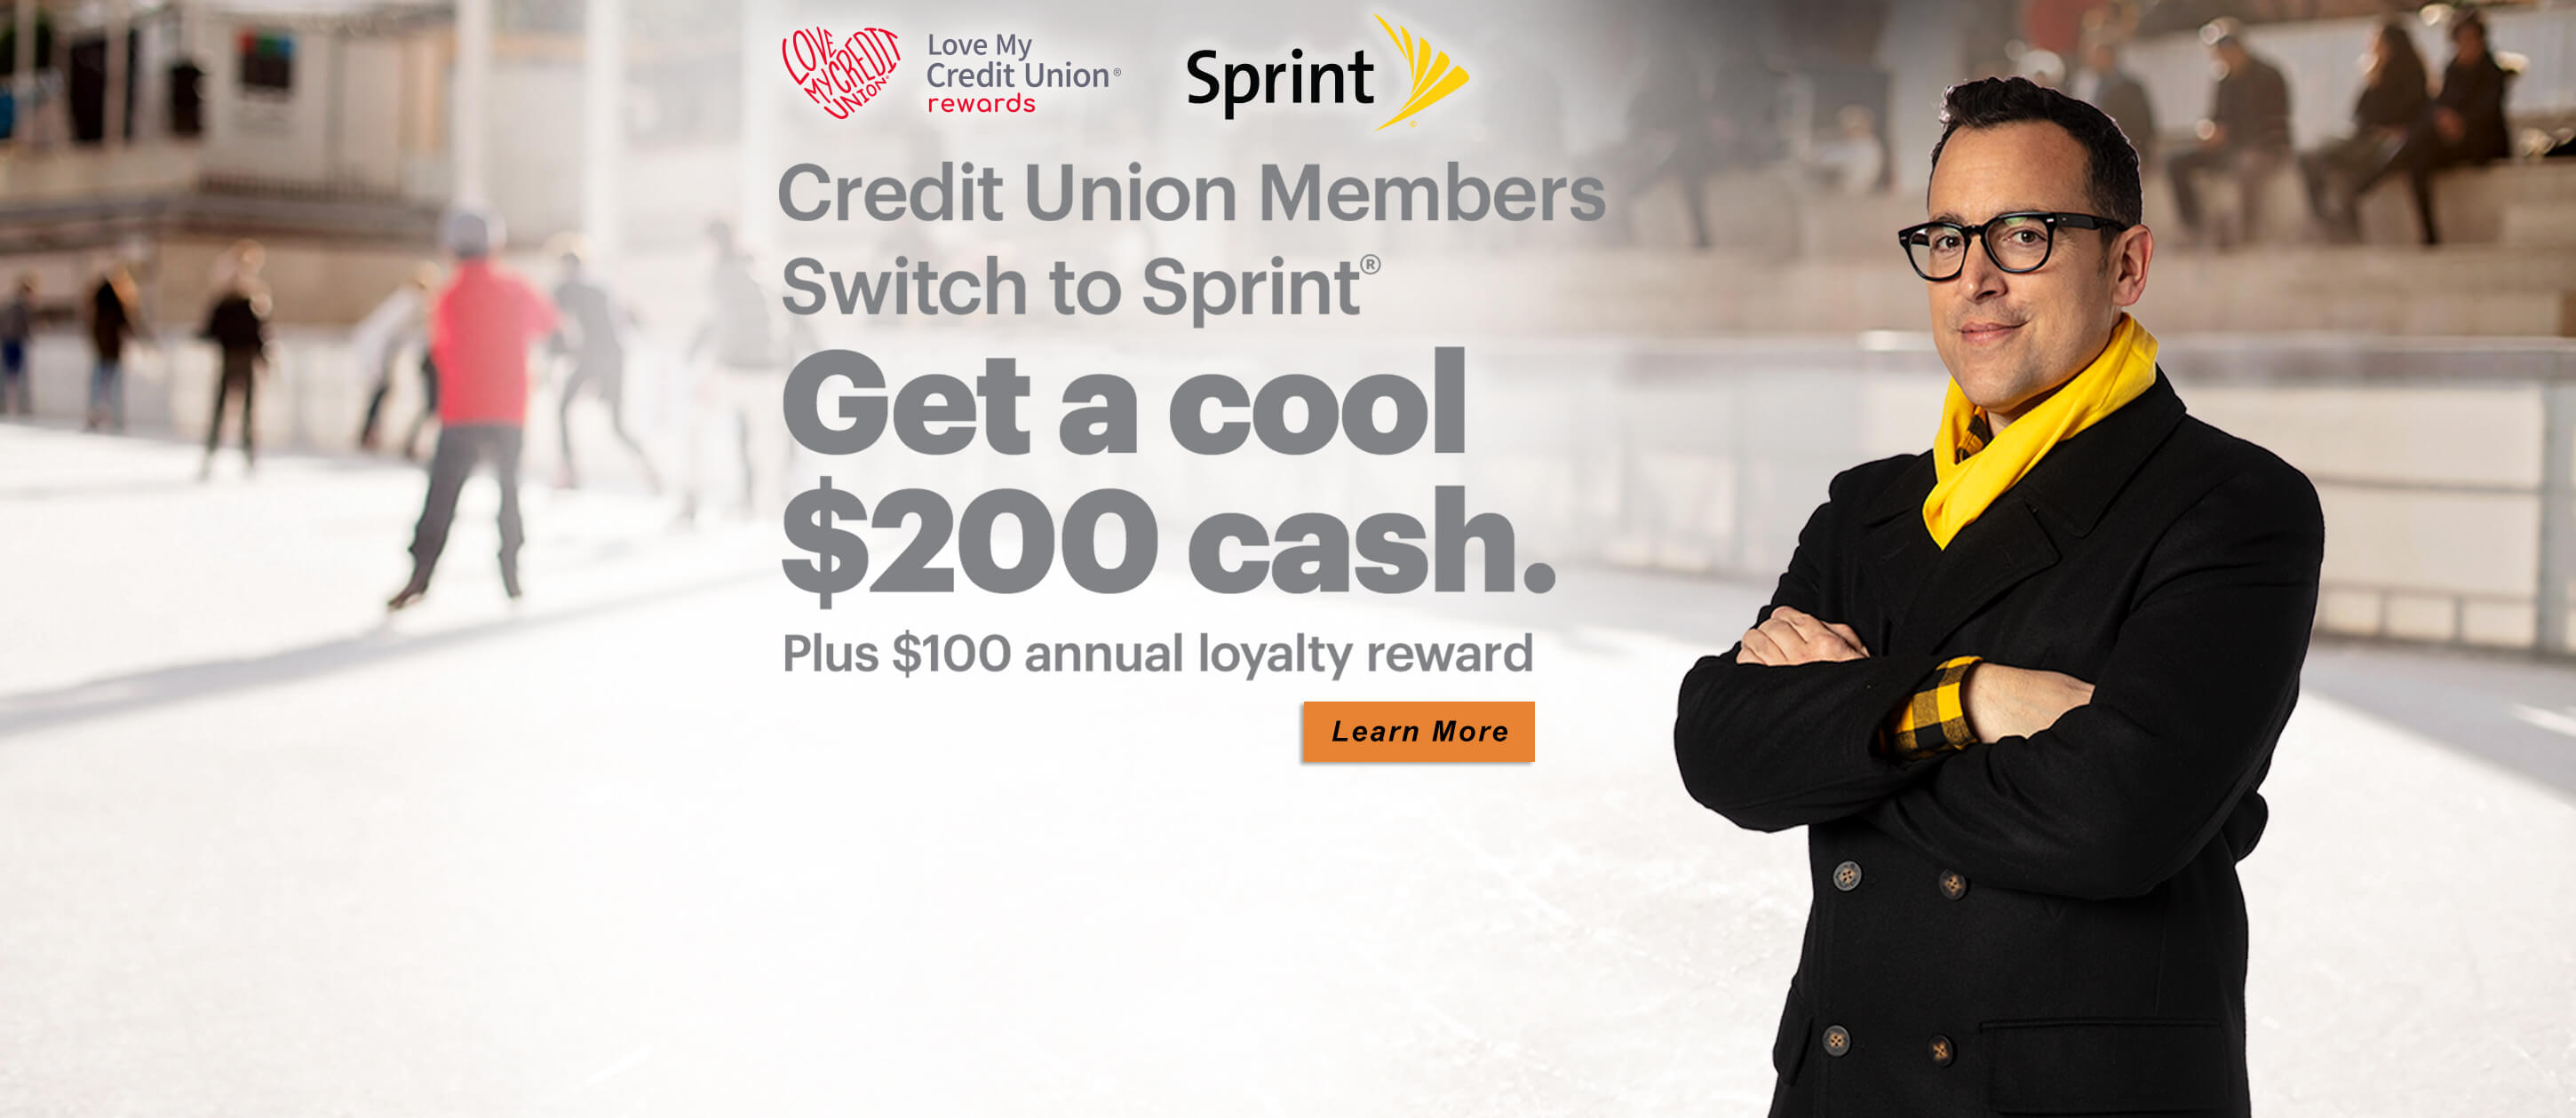 Switch to Sprint, Get $200